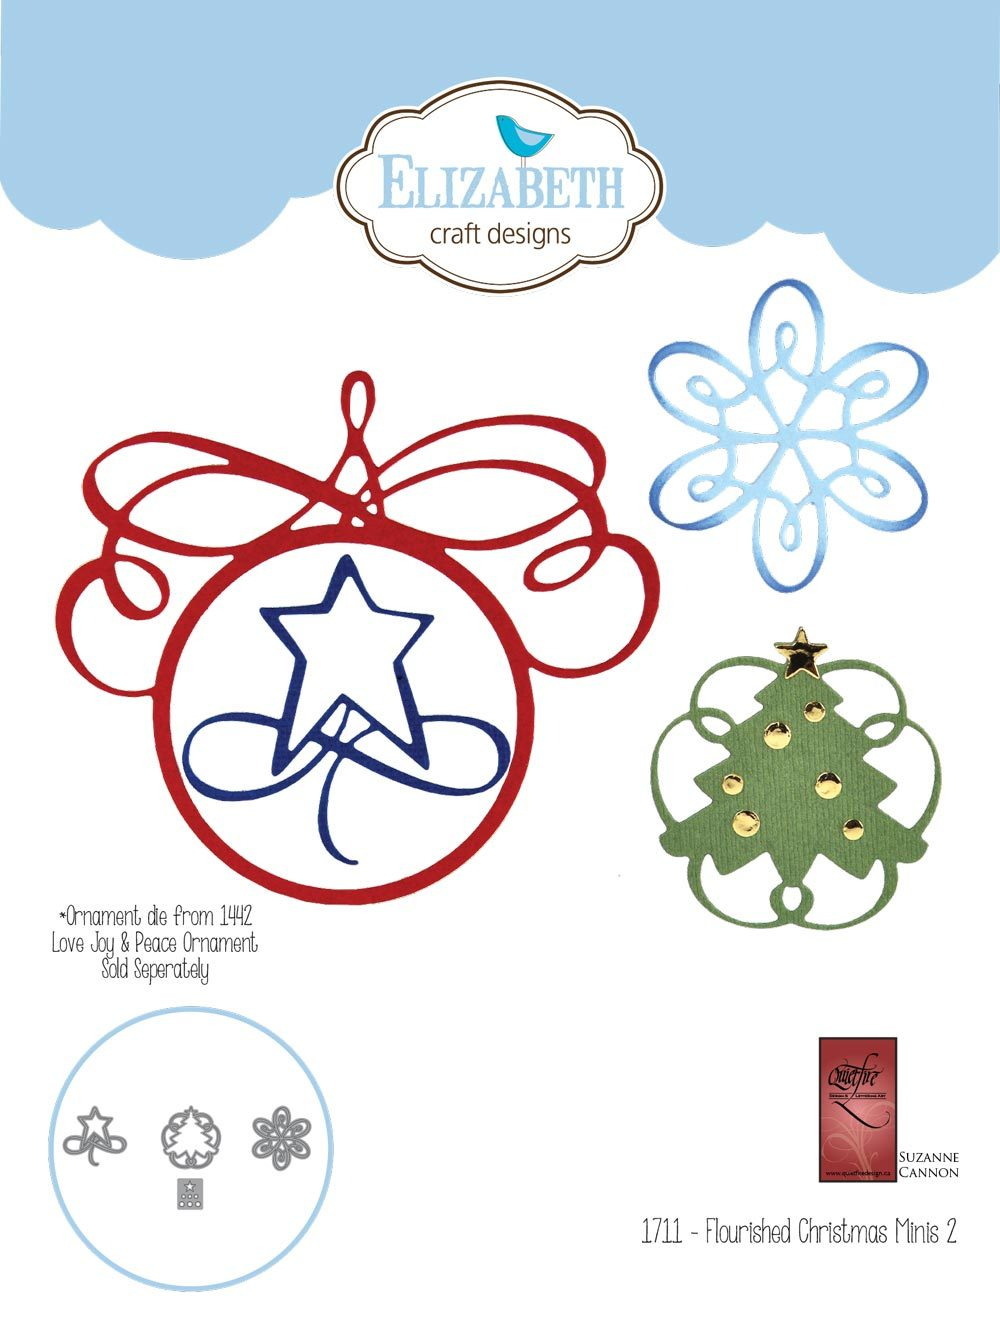 Elizabeth Craft Designs - Dies - Flourished Christmas Minis 2